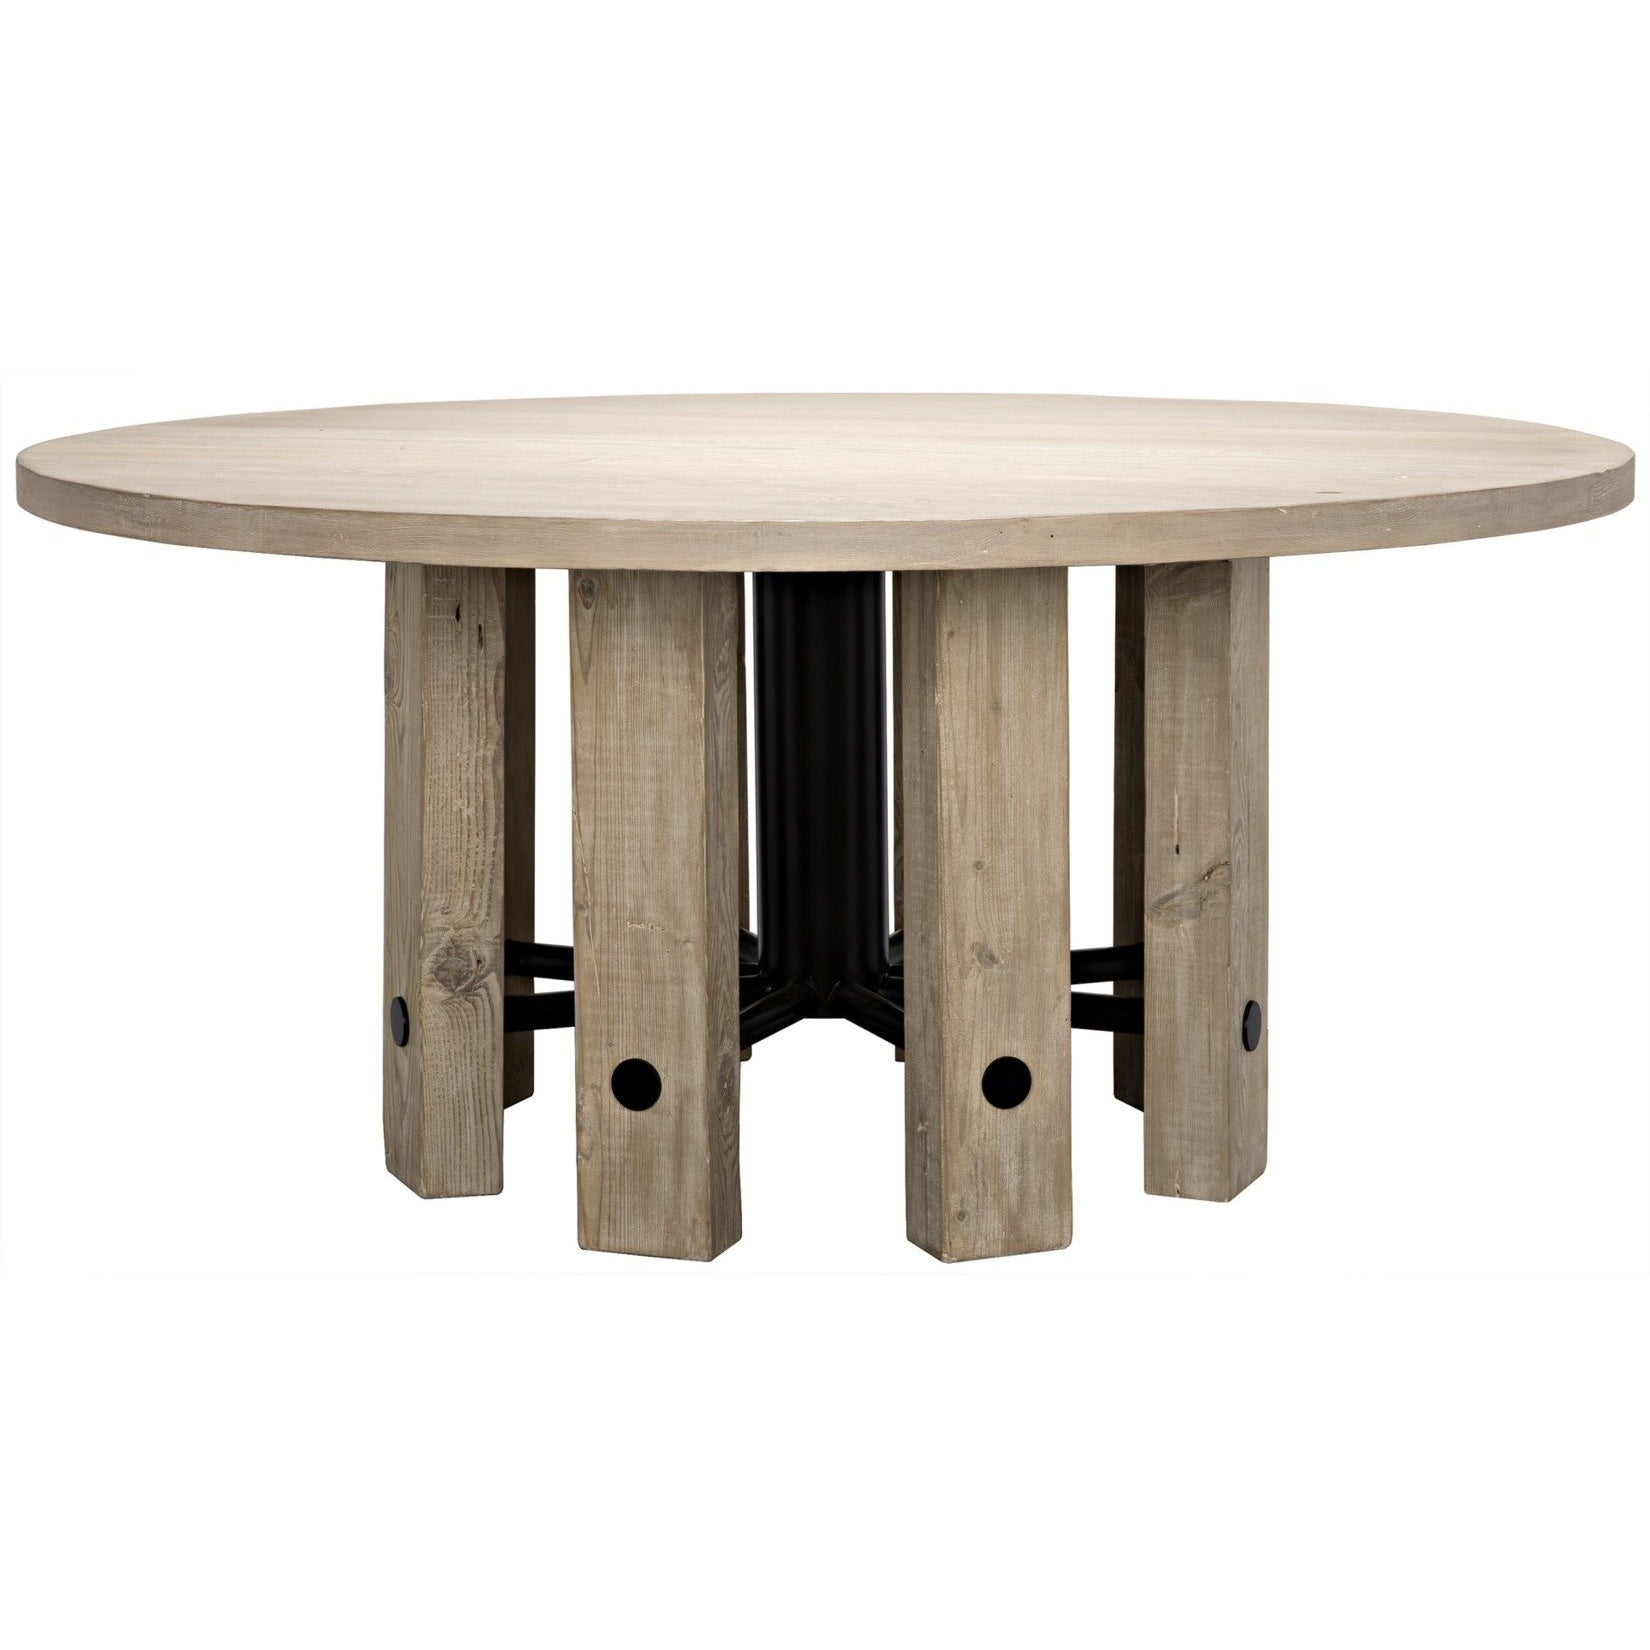 CFC Furniture Monstro Round Dining Table-CFC Furniture-Blue Hand Home